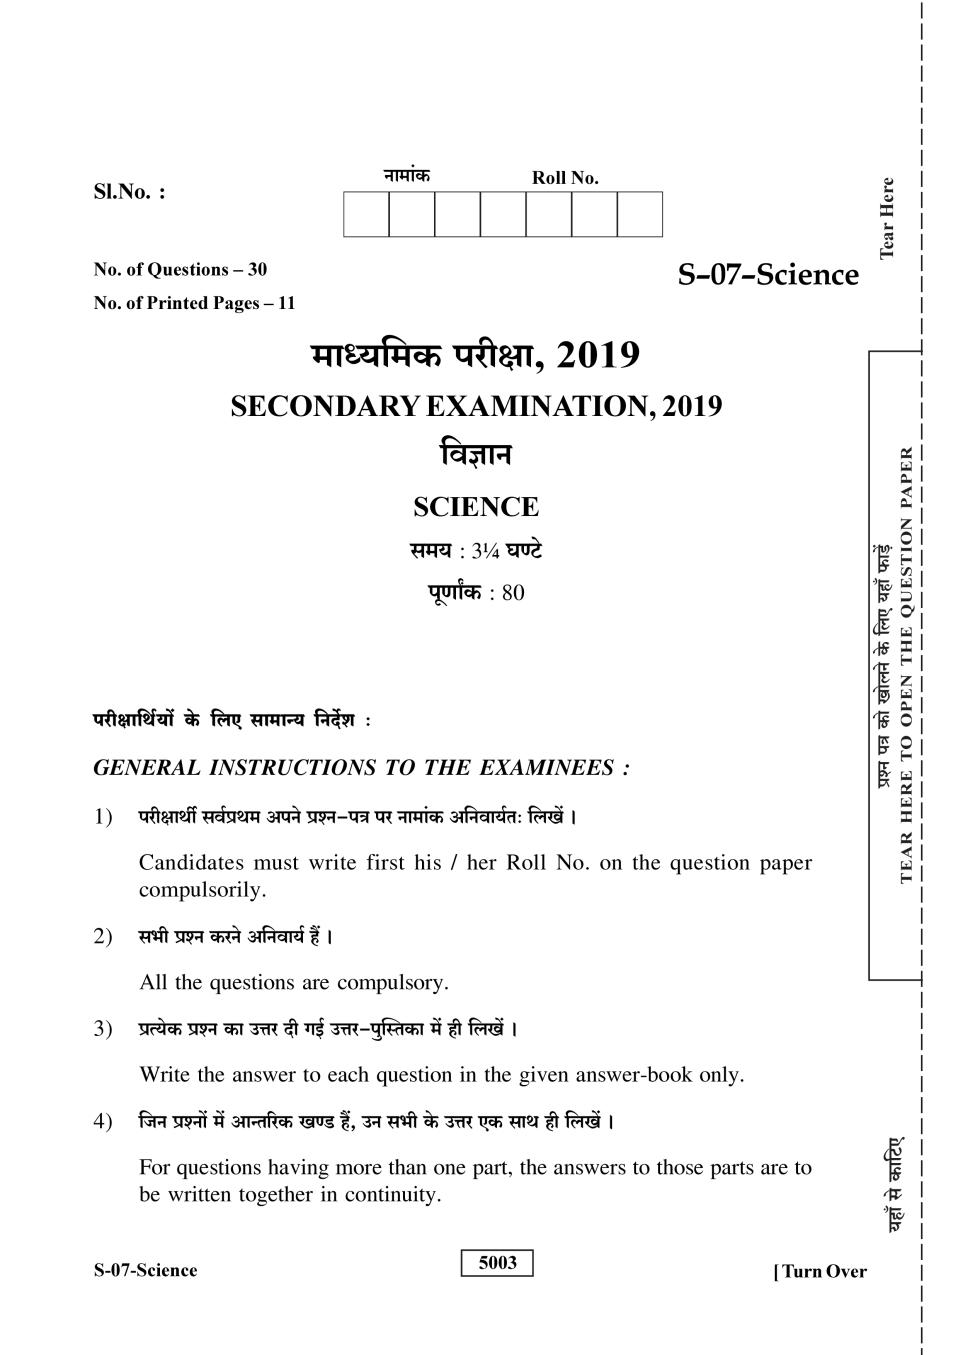 Rajasthan Board Secondary Science Question Paper